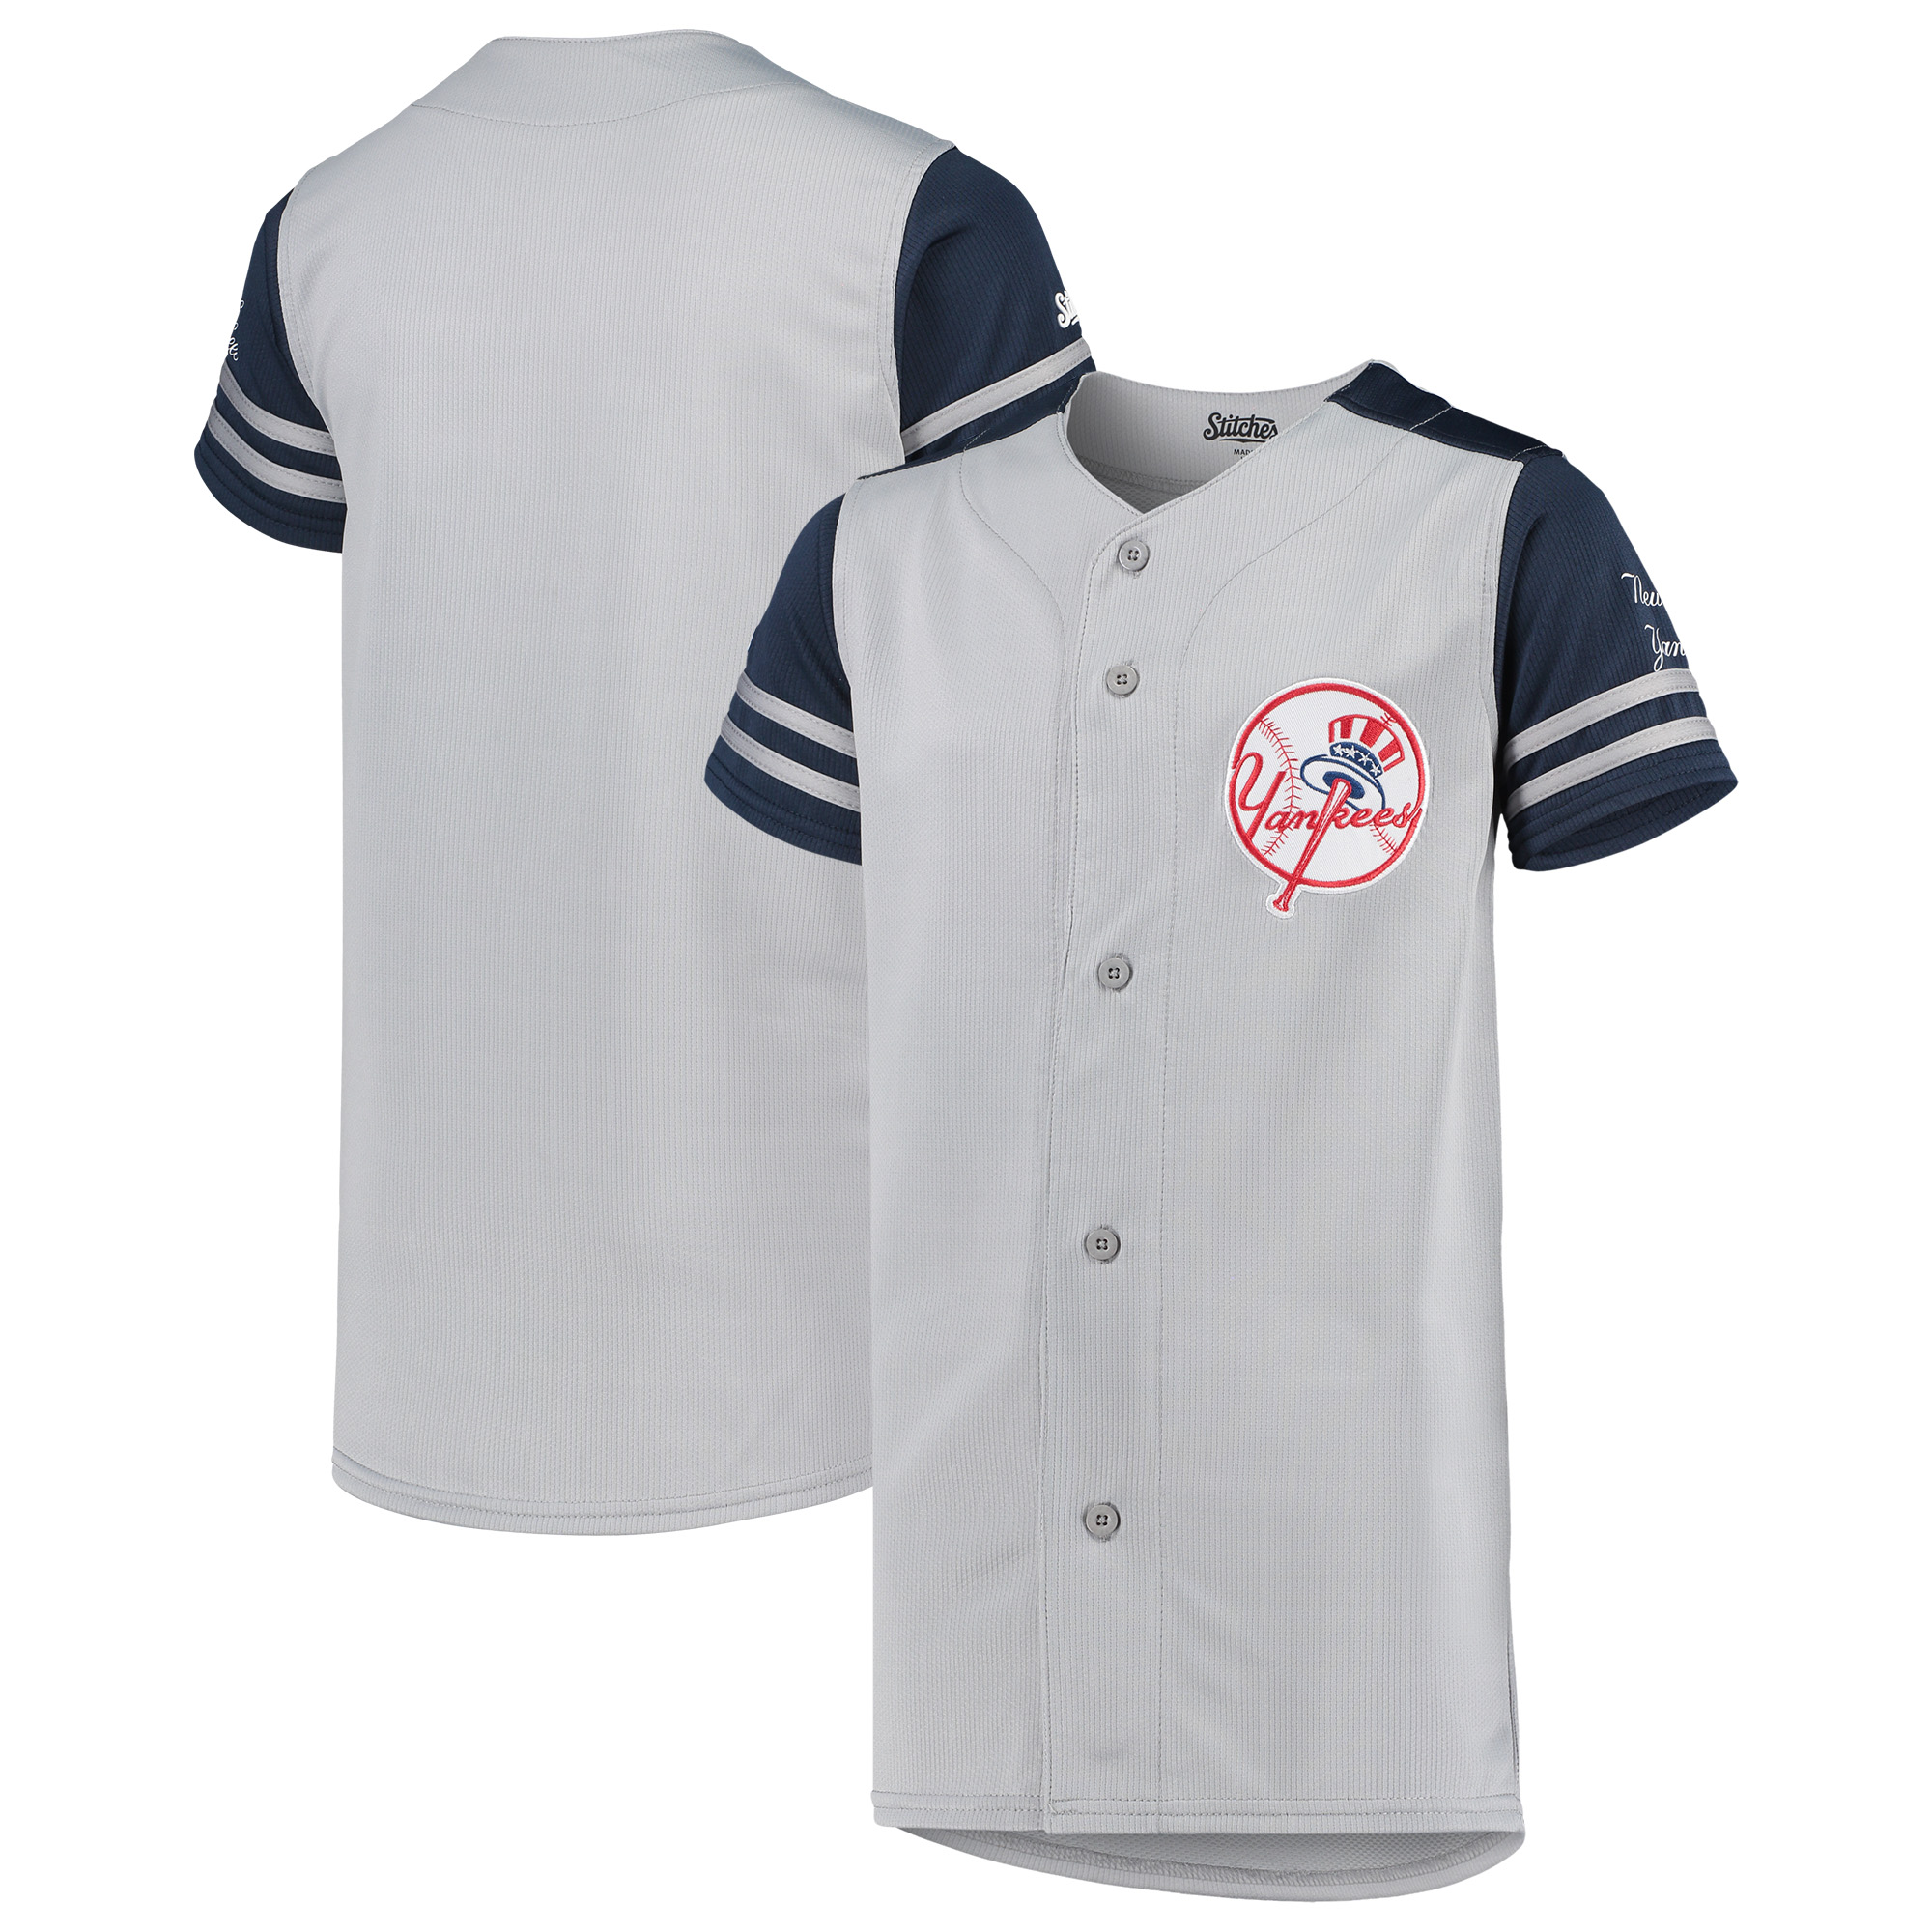 New York Yankees Stitches Youth Team Jersey - Gray/Navy